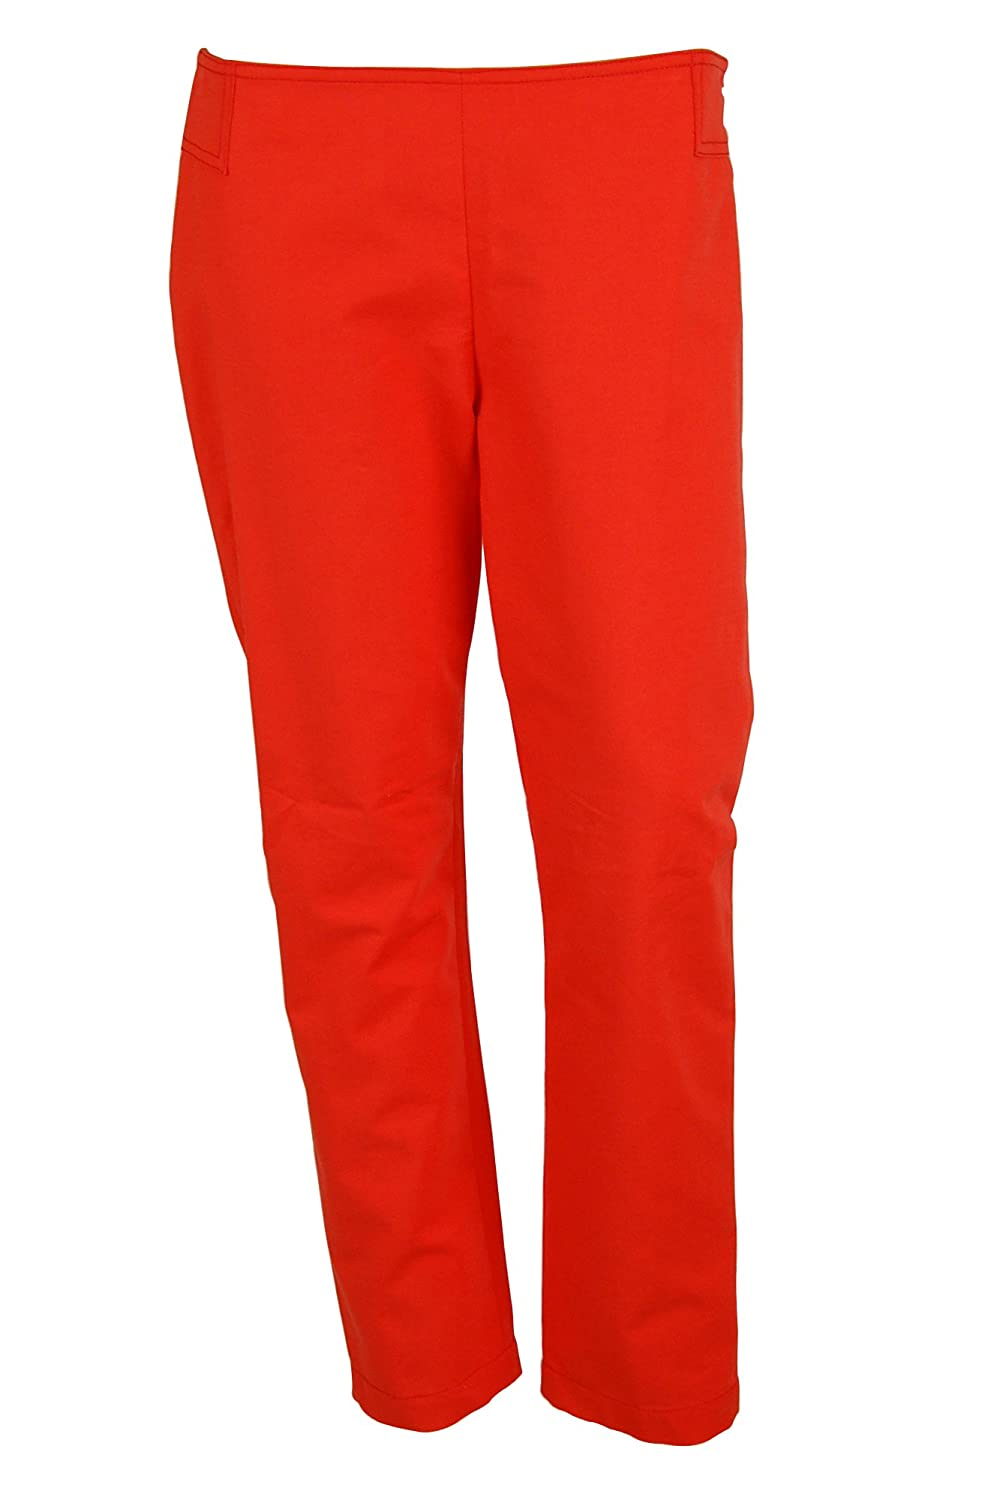 10 Crosby Derek Lam Womens Pocketless Capri Buckle Pants